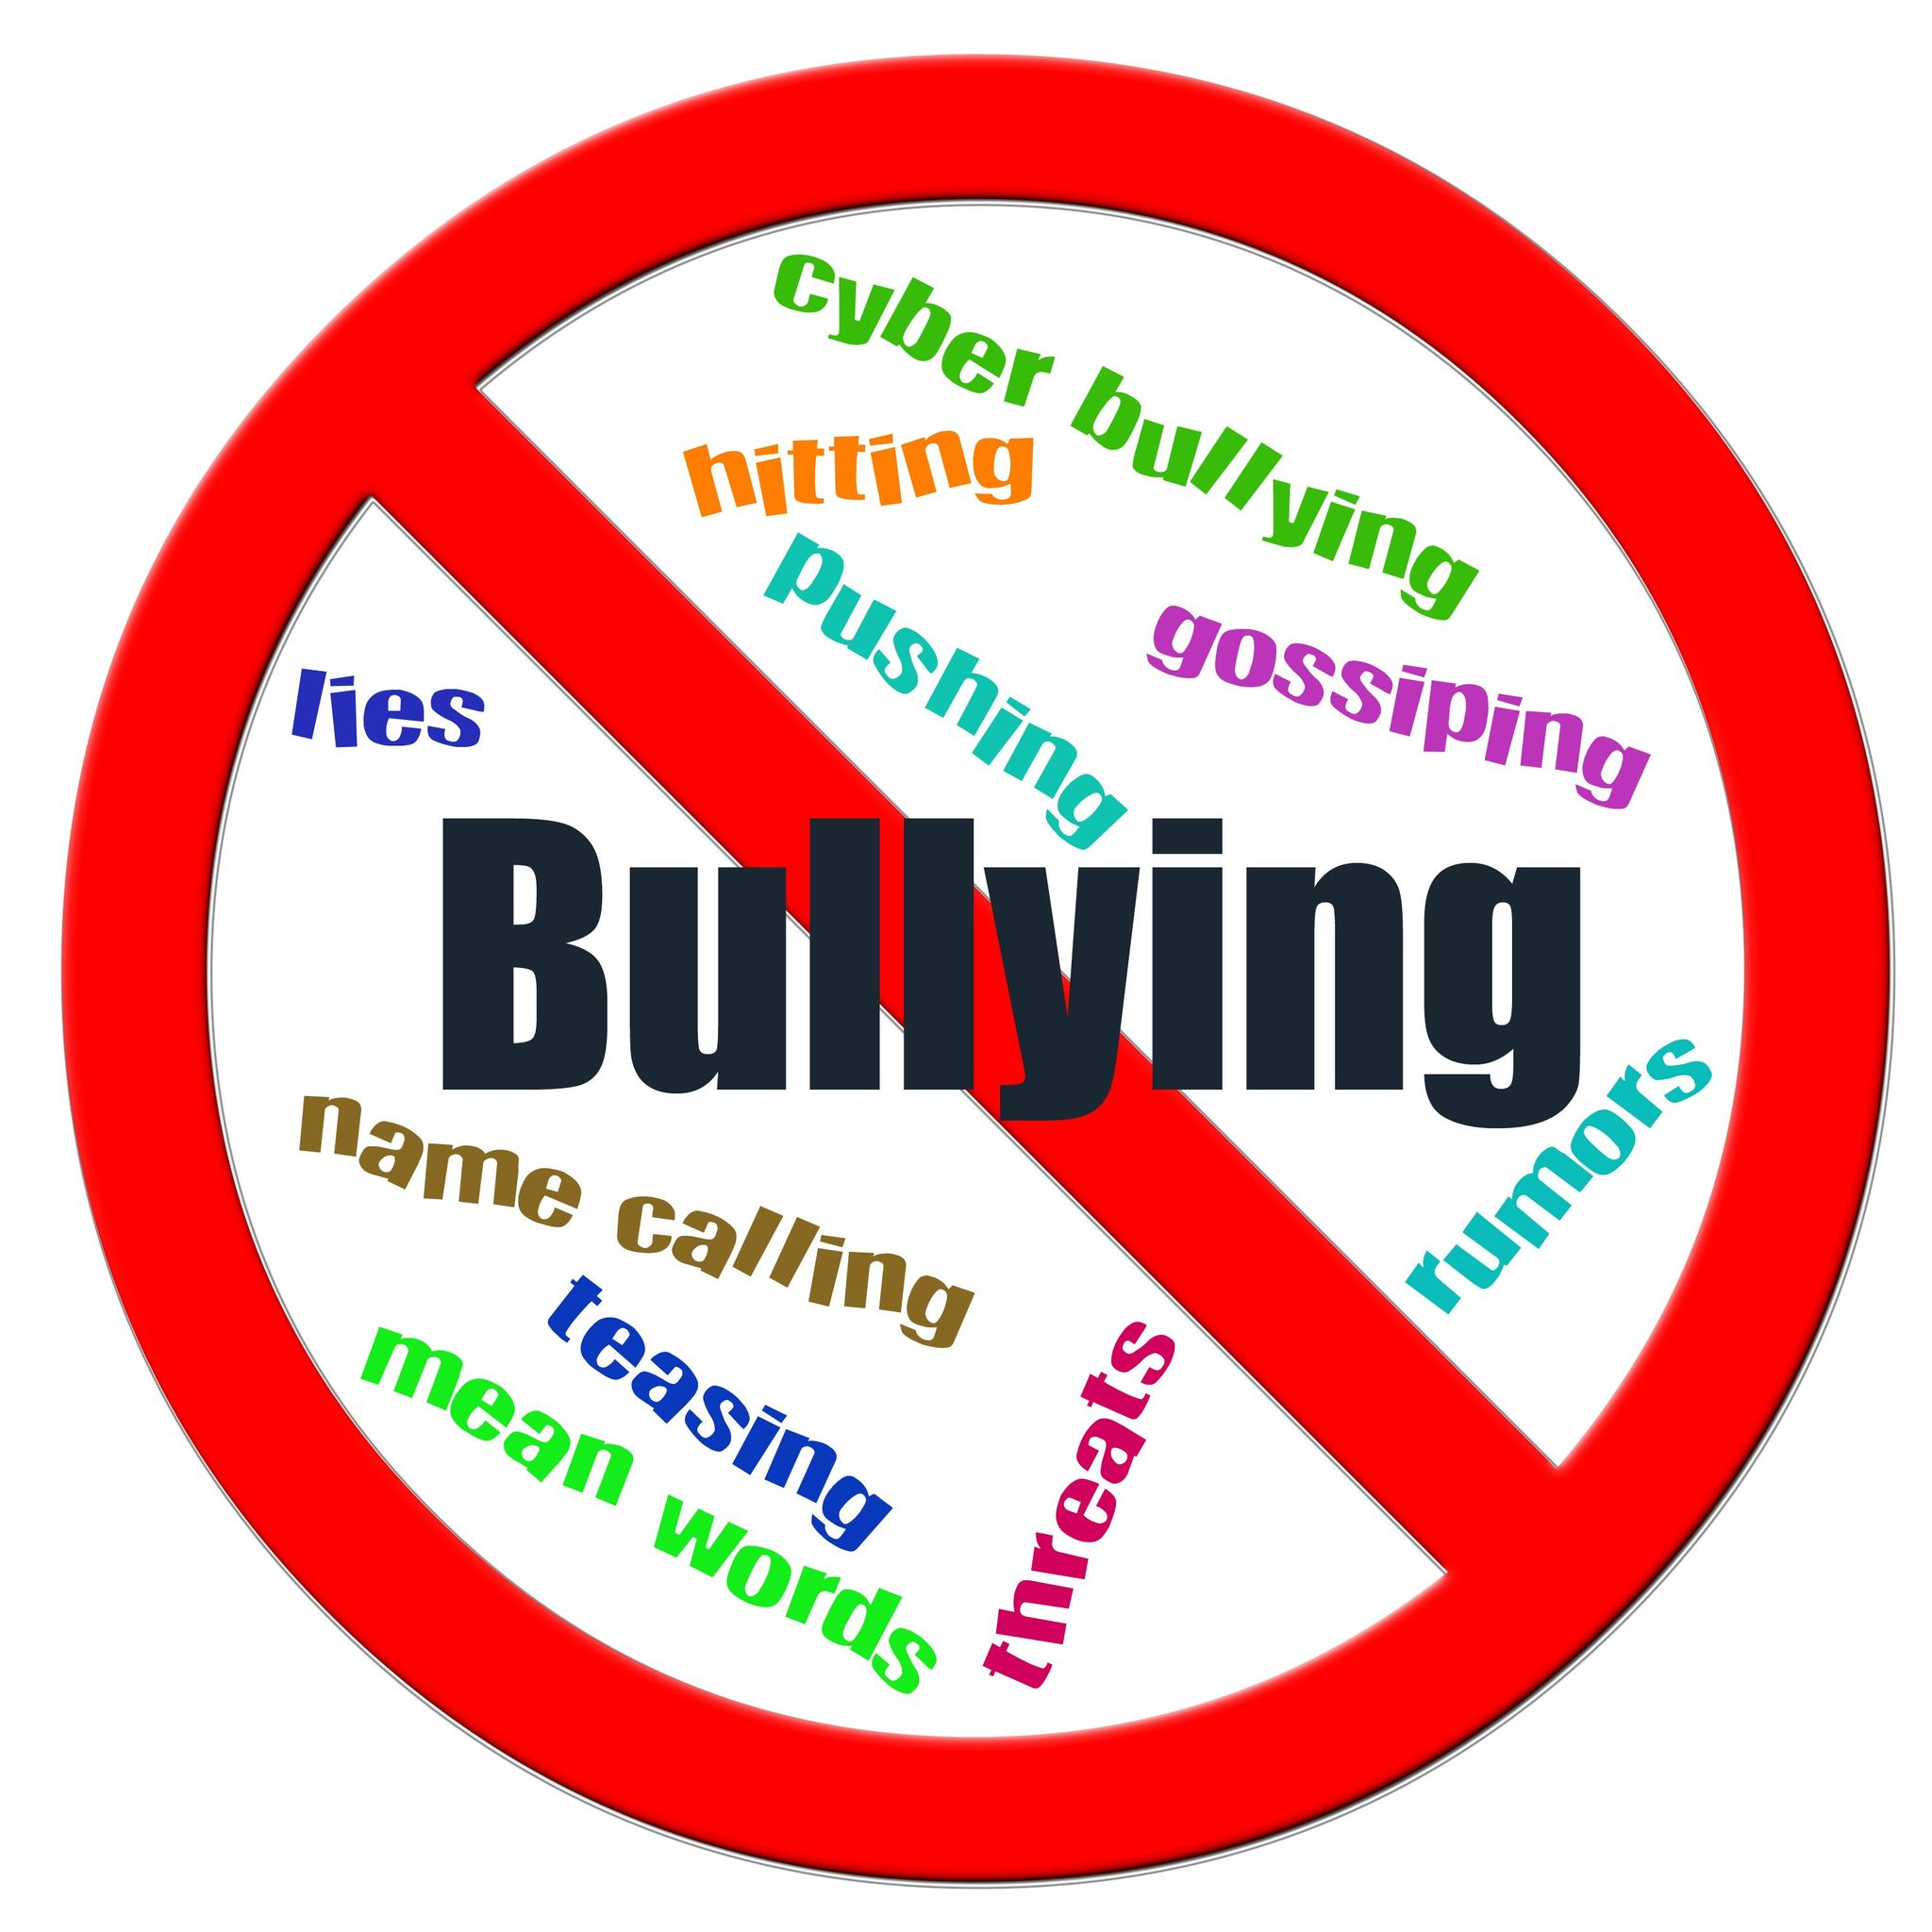 Bullying Awareness Month (October 2013)